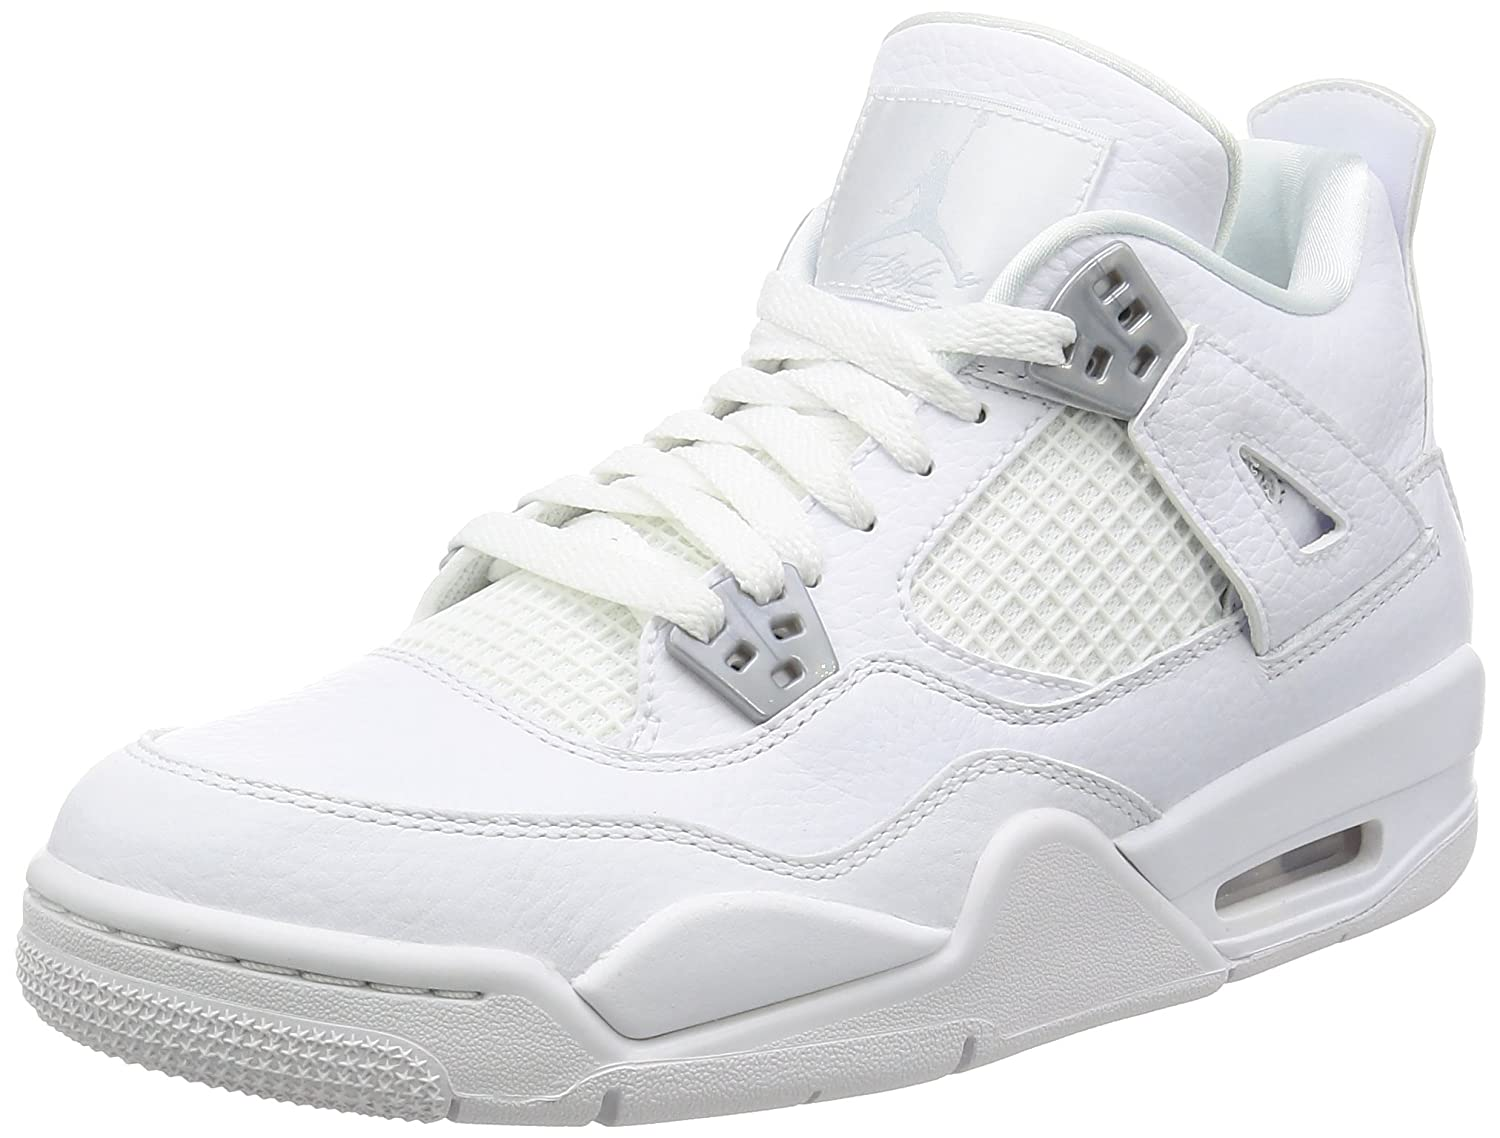 White, metalic silver Nike Jordan Kids Air Jordan 4 Retro Bg Basketball shoes